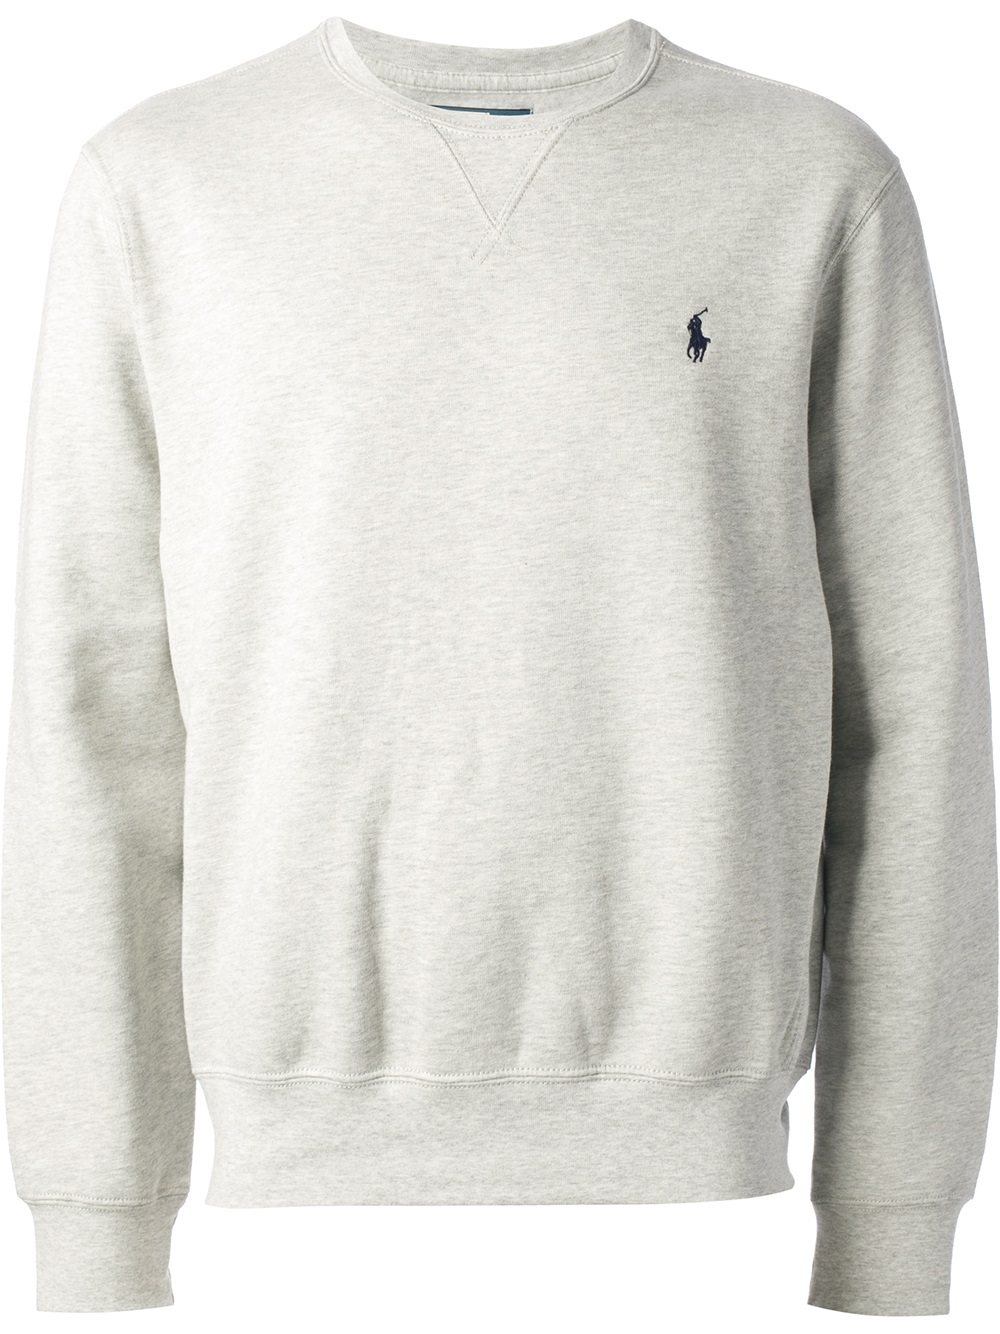 lyst polo ralph lauren estate fleece sweatshirt in gray. Black Bedroom Furniture Sets. Home Design Ideas